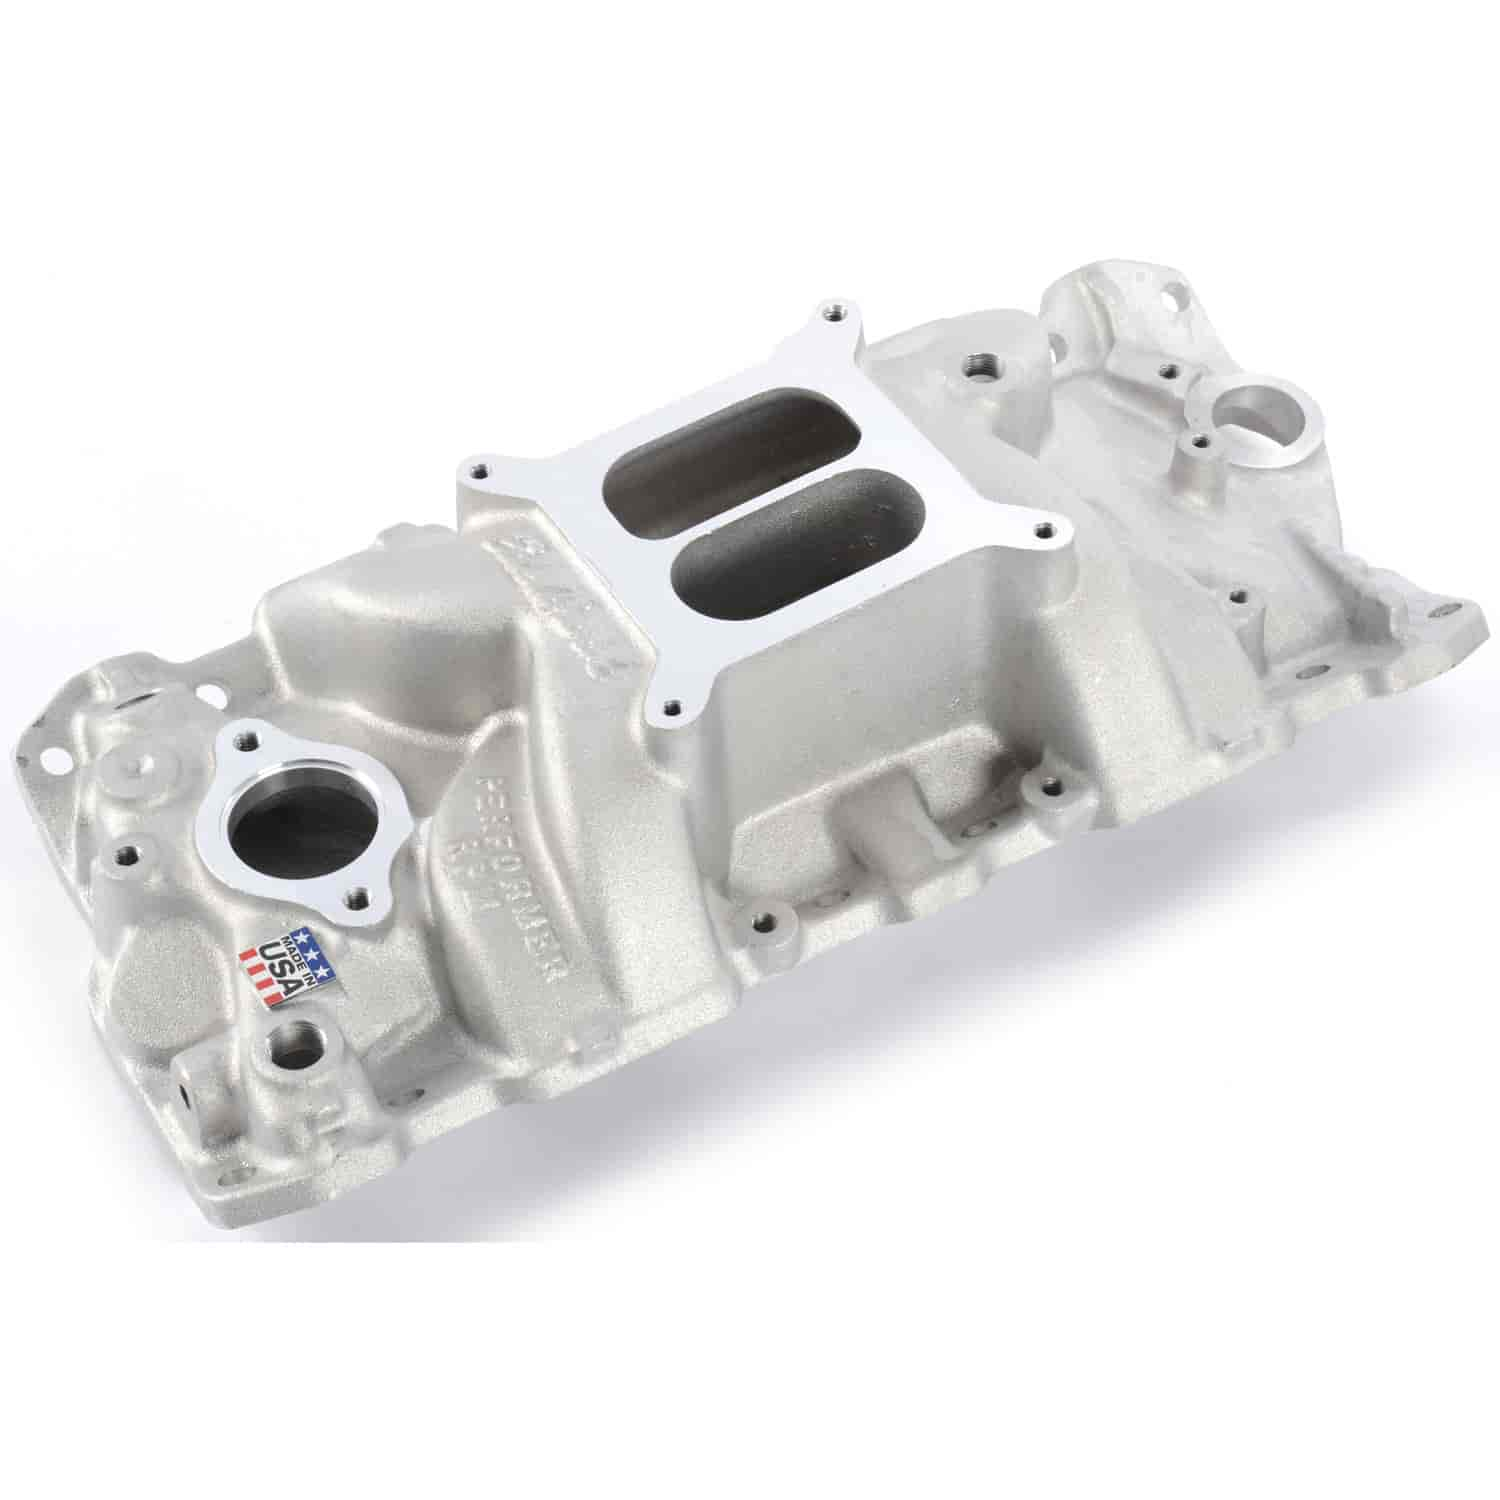 Edelbrock Performer RPM Small Block Chevy Intake Manifold